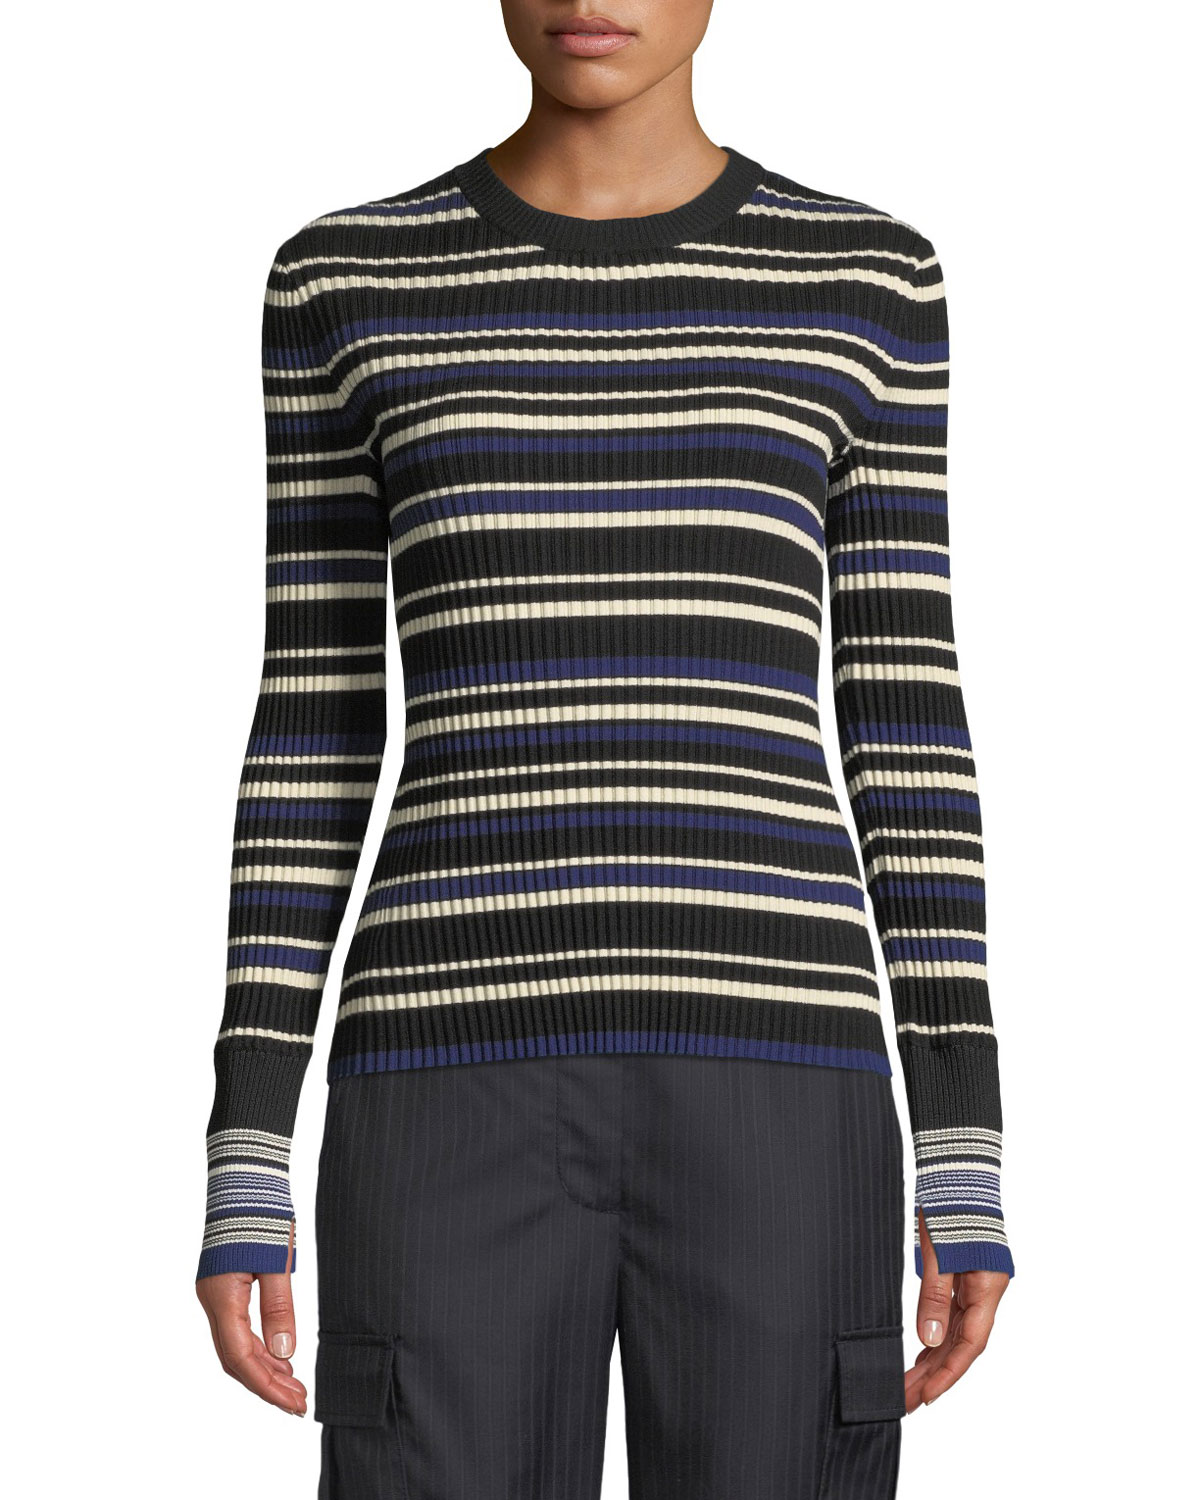 3.1 Phillip Lim Multi Striped Silk/Cotton Pullover Sweater